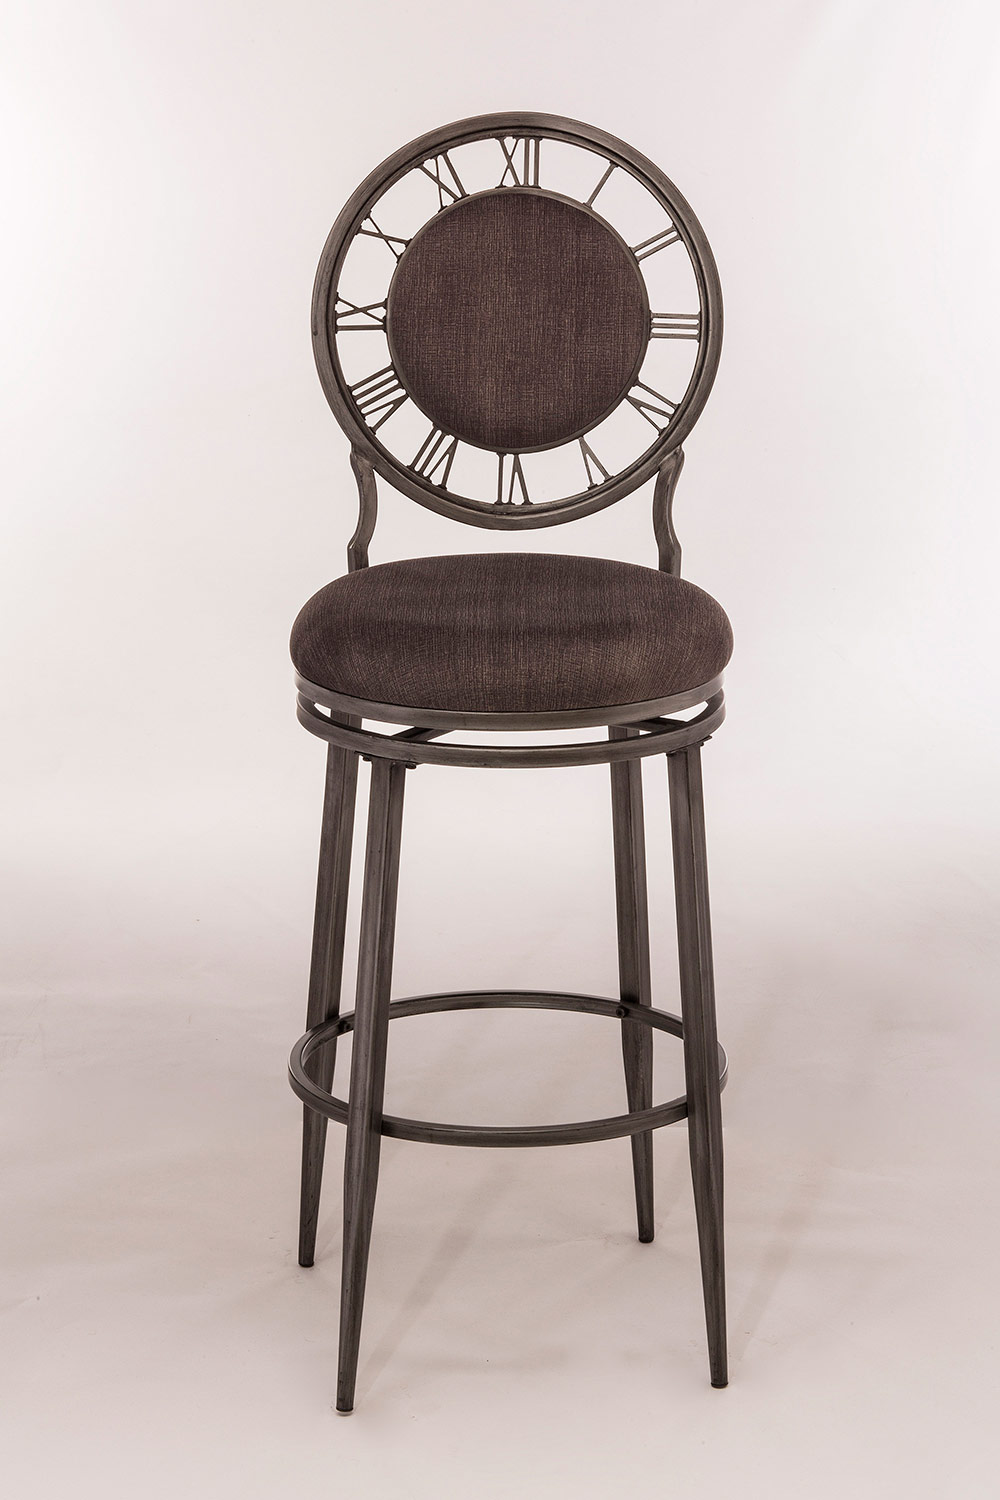 Hillsdale Big Ben Swivel Bar Stool - Pewter